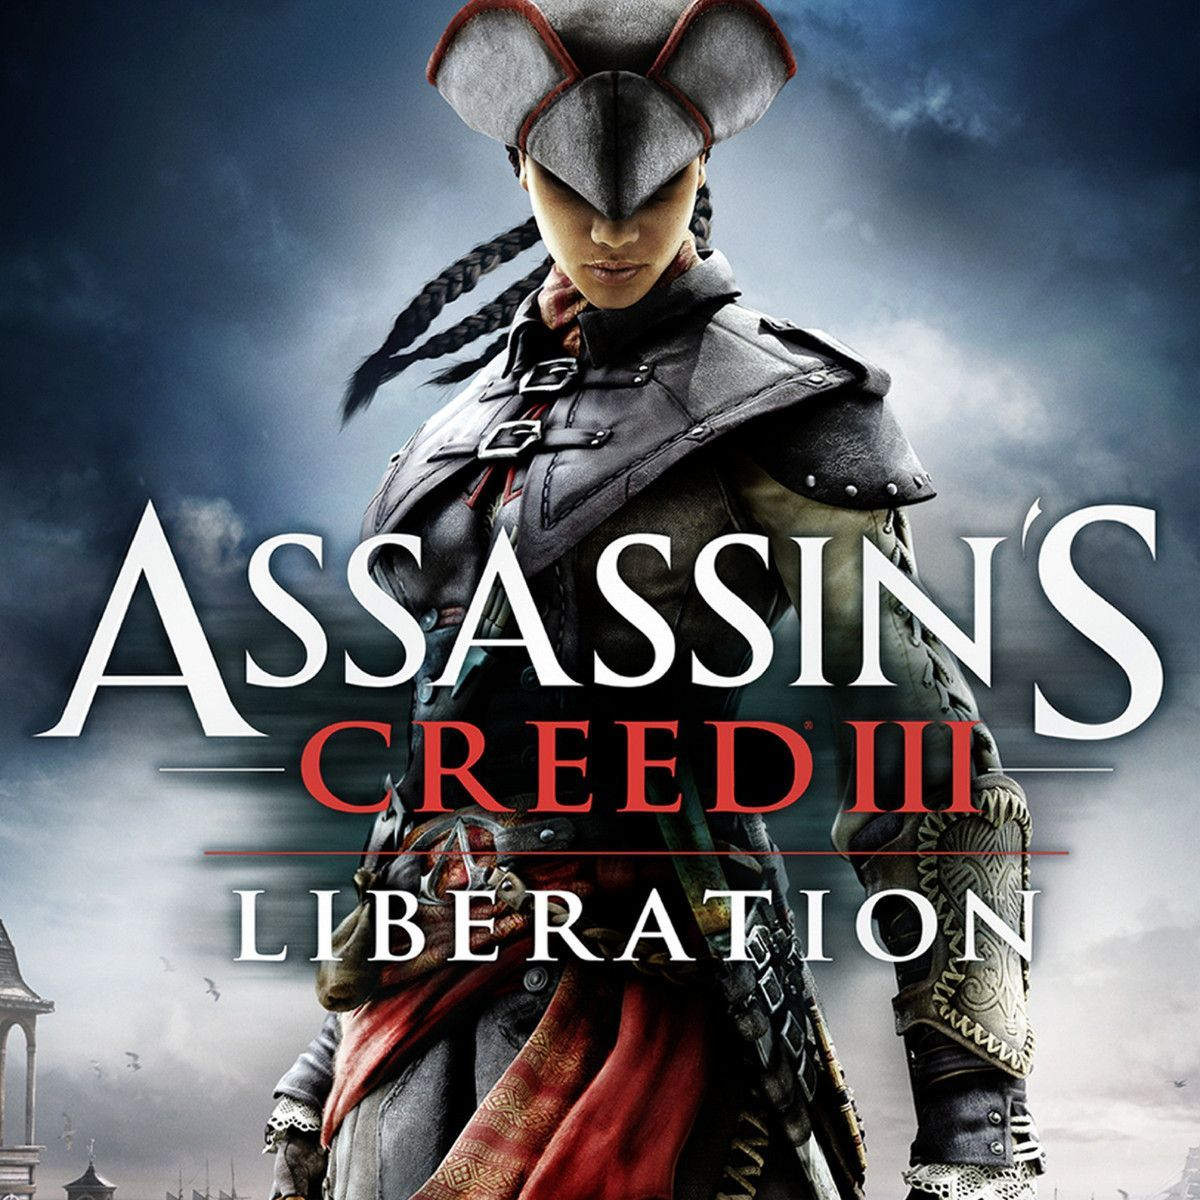 Assassin S Creed Iii Liberation Soundtrack Assassin S Creed